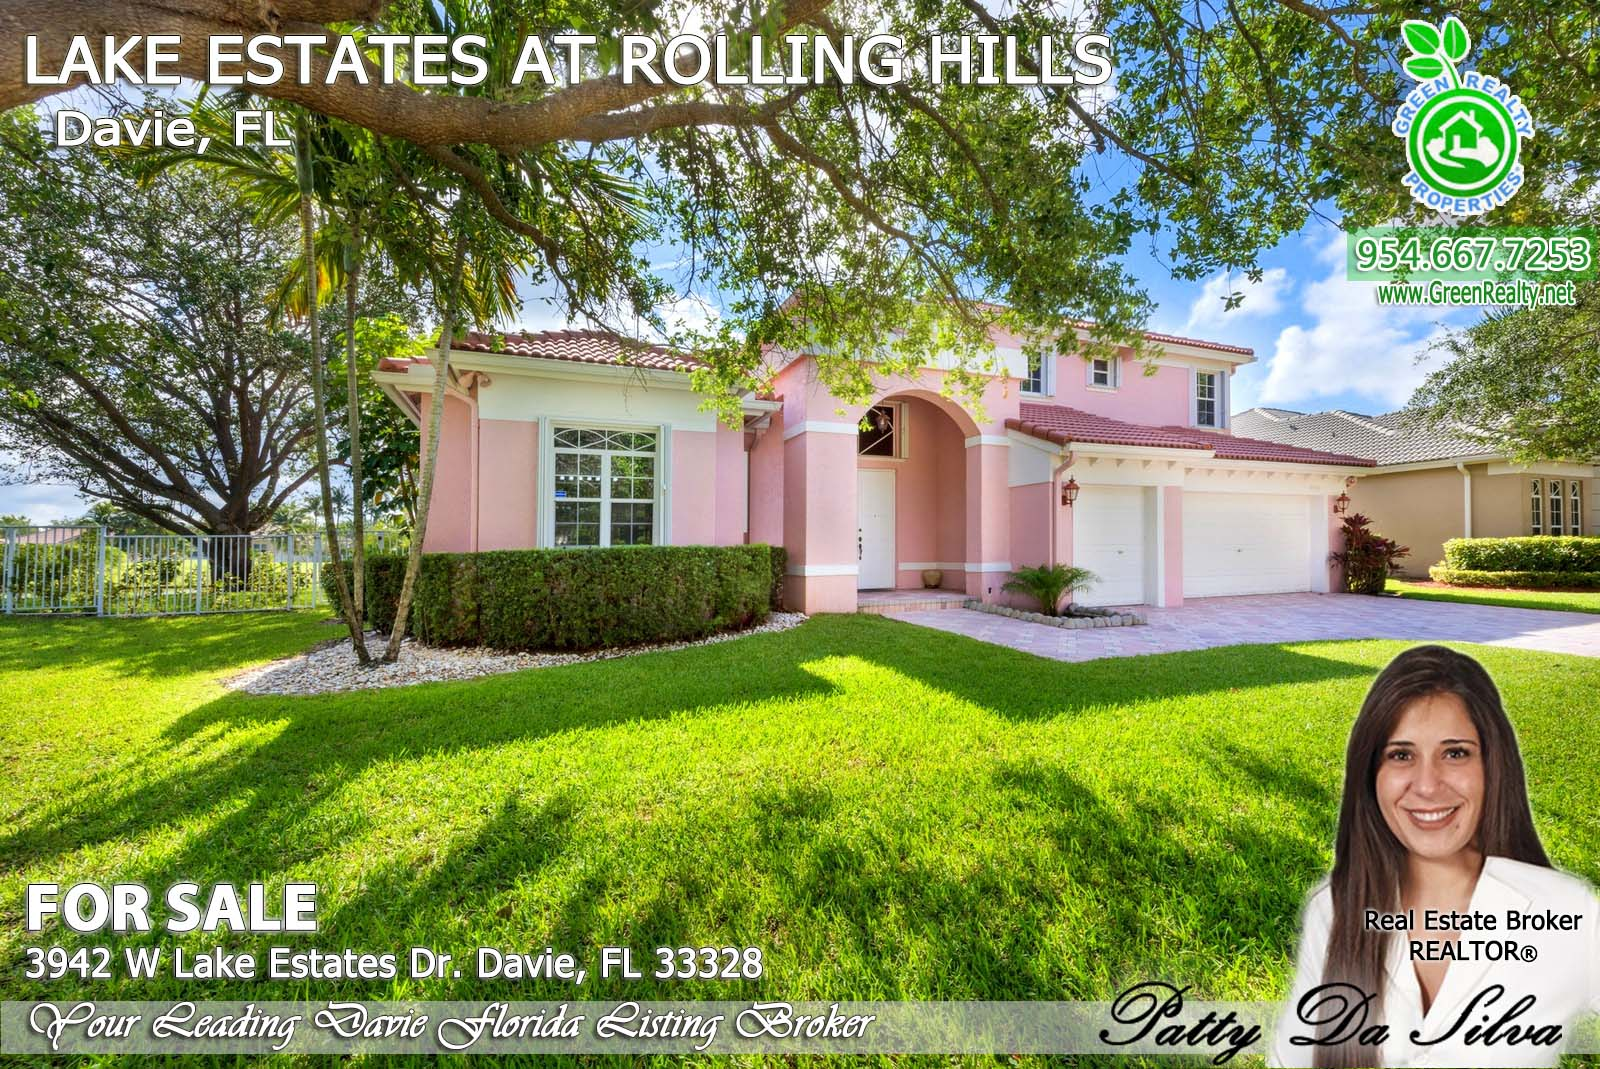 3942 W Lake Estates Dr - Davie FL 33328 (26)